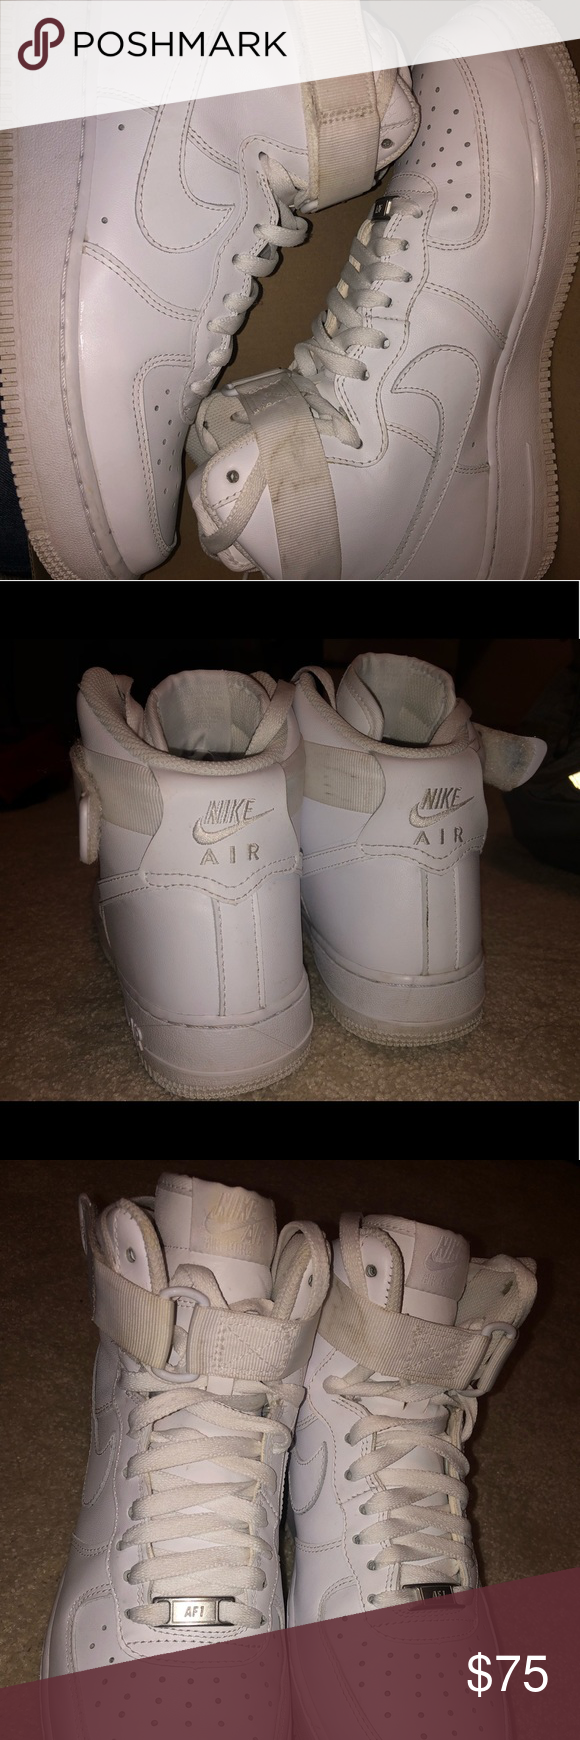 High top Nike Air Force 1 Size 9, Women\u0027s, slightly worn in